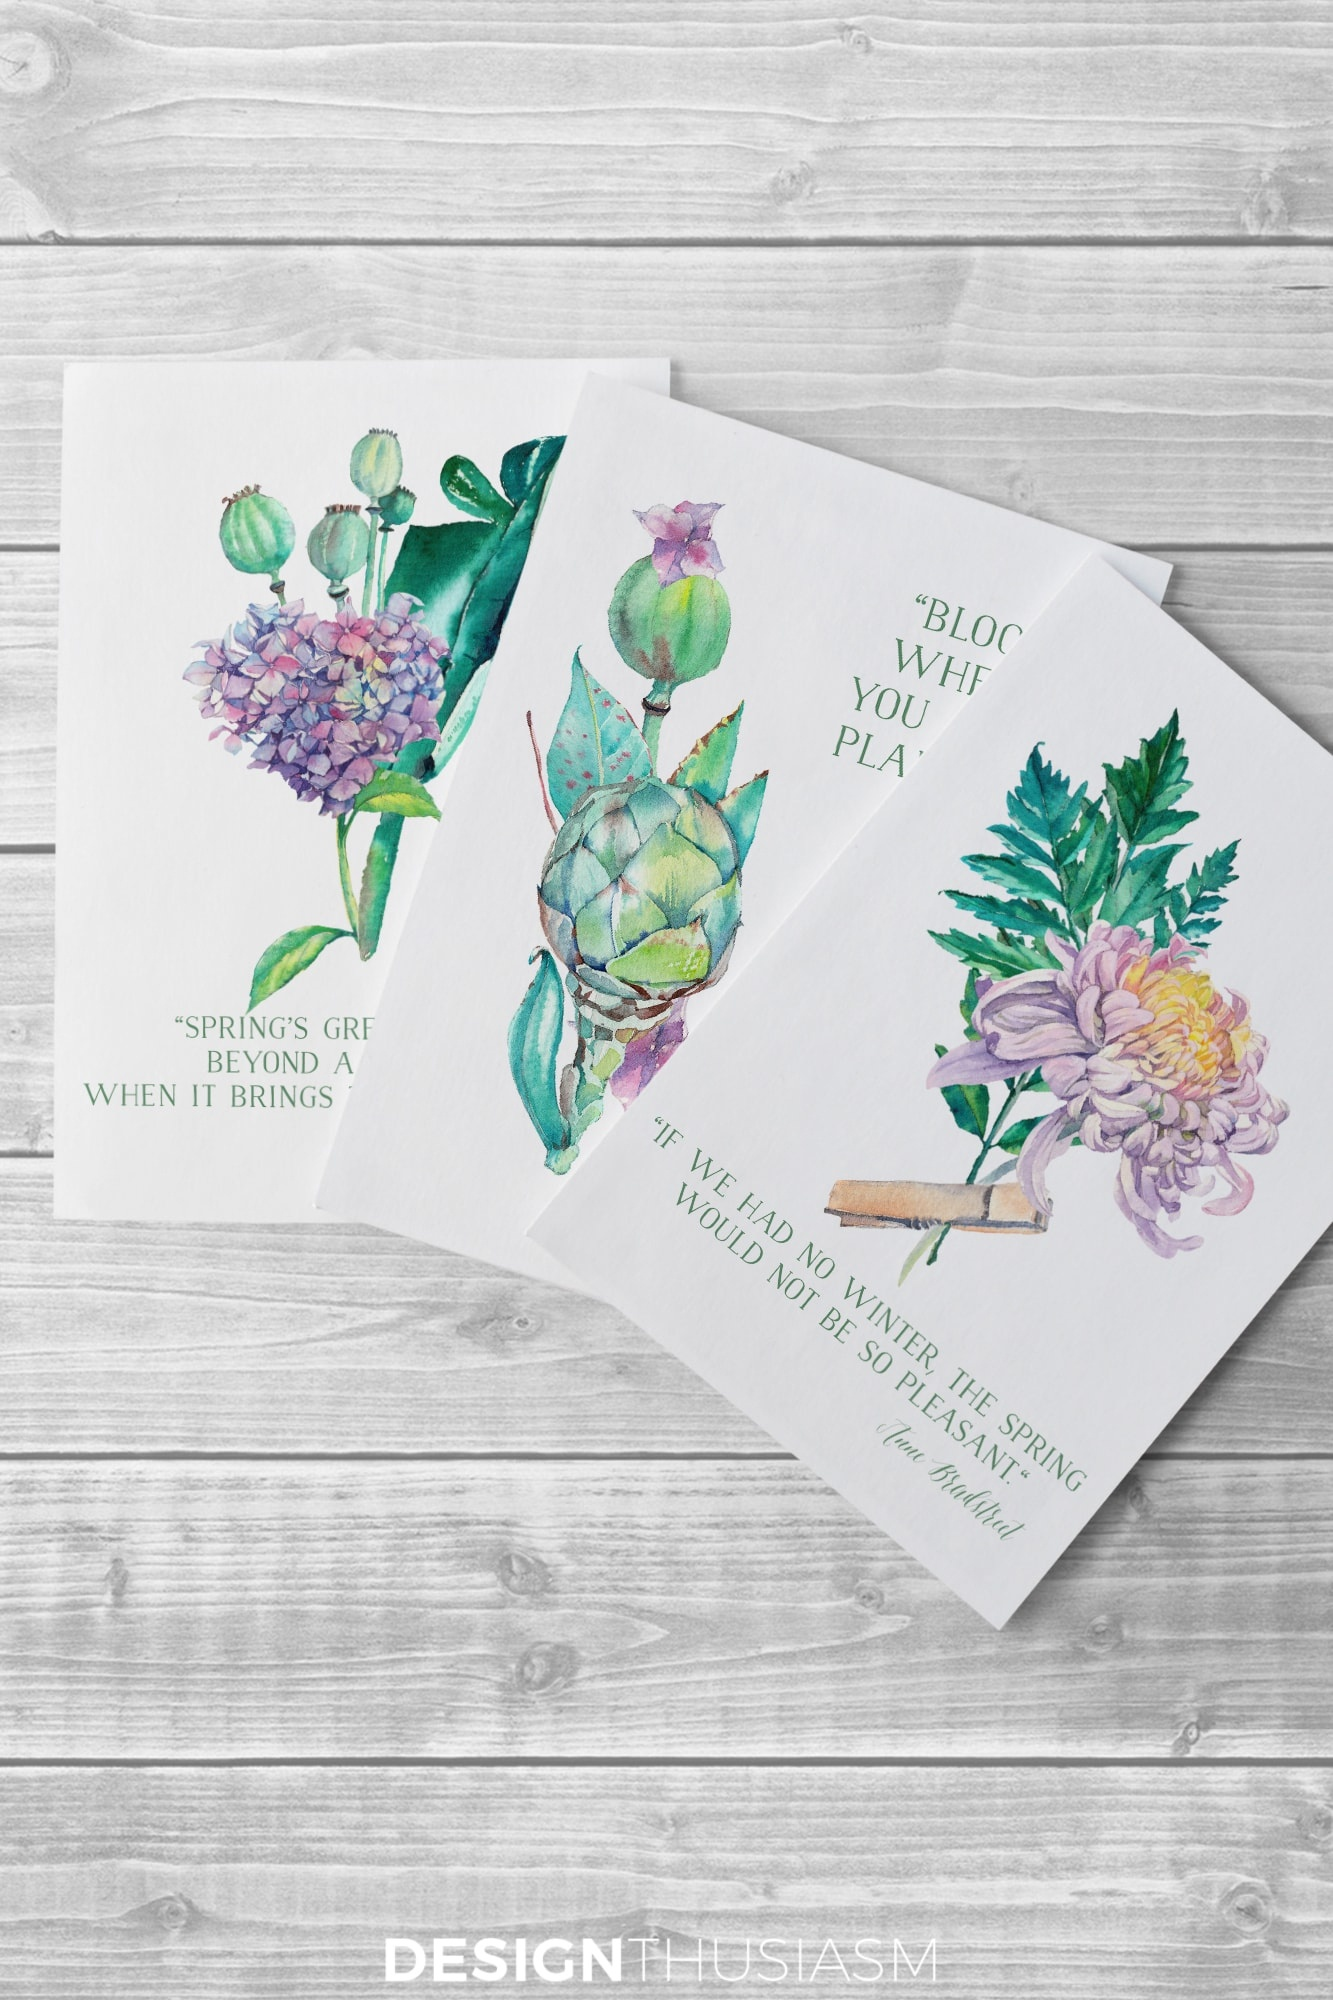 Free Printable Art For Spring: Watercolor Flowers For Diy Wall Decor - Free Printable Wall Art Decor